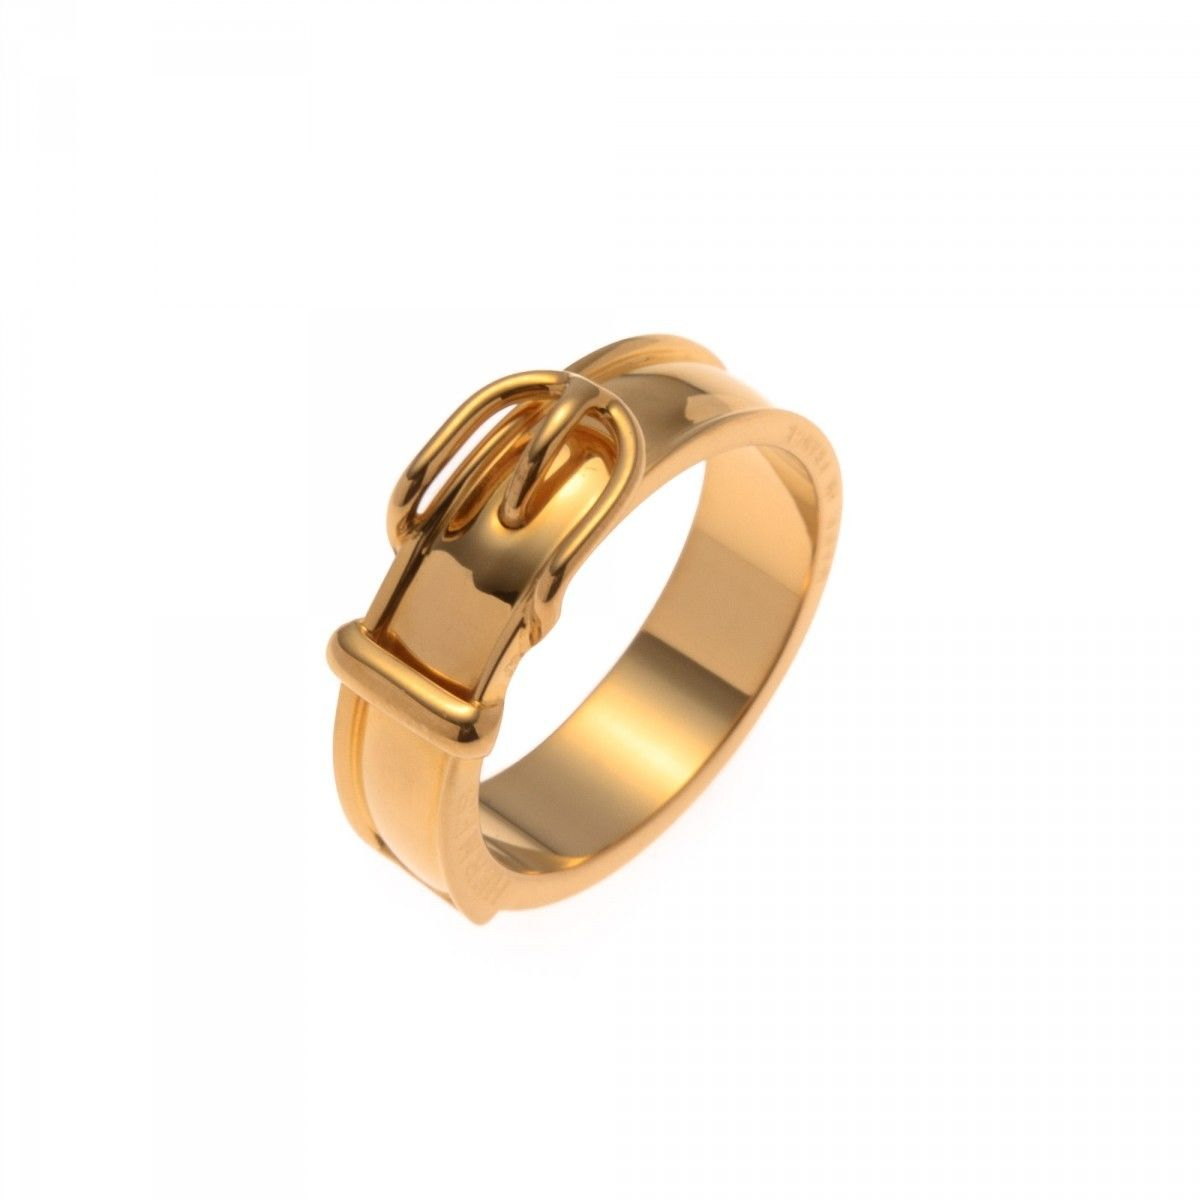 Hermes Scarf Ring Gold